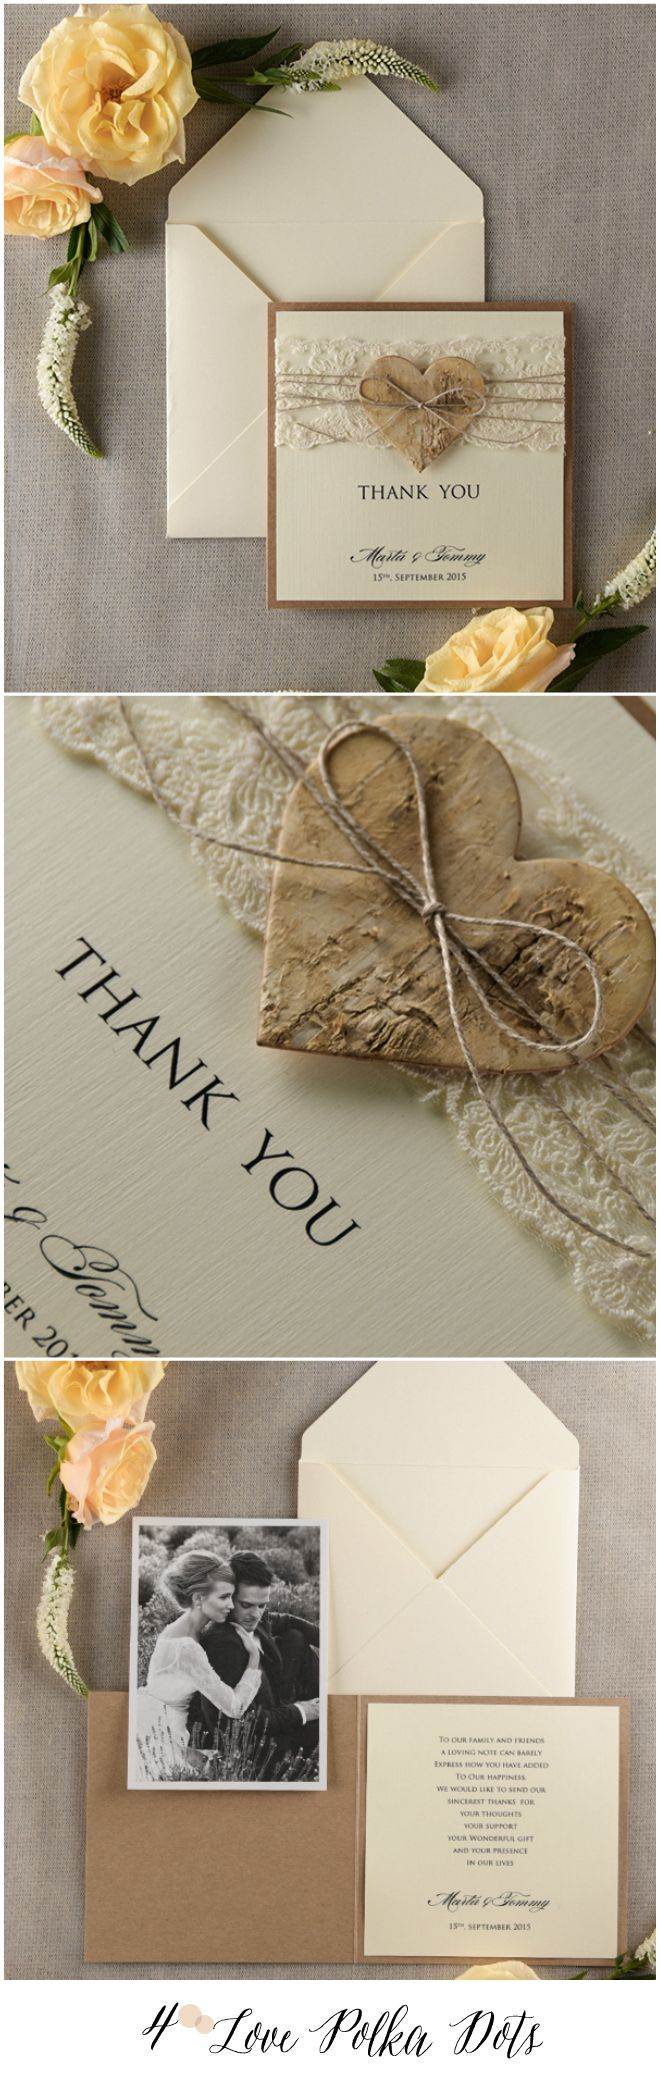 personalized wedding thank you notes%0A Rustic Wedding Thank You card with your photo    weddingideas  wedding   thankyou